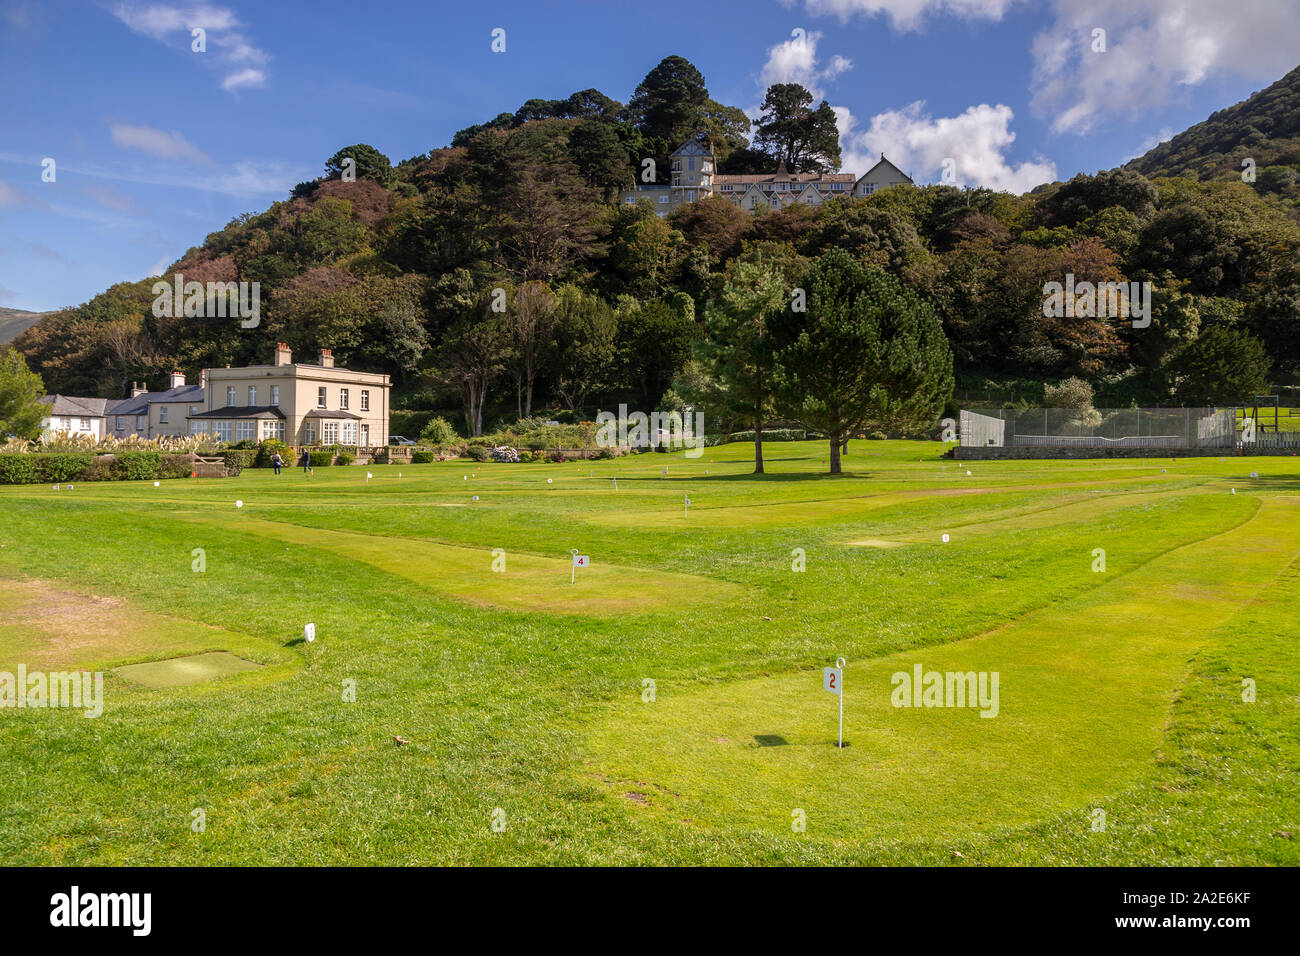 Putting green at Lynmouth on the North Devon coast Stock Photo